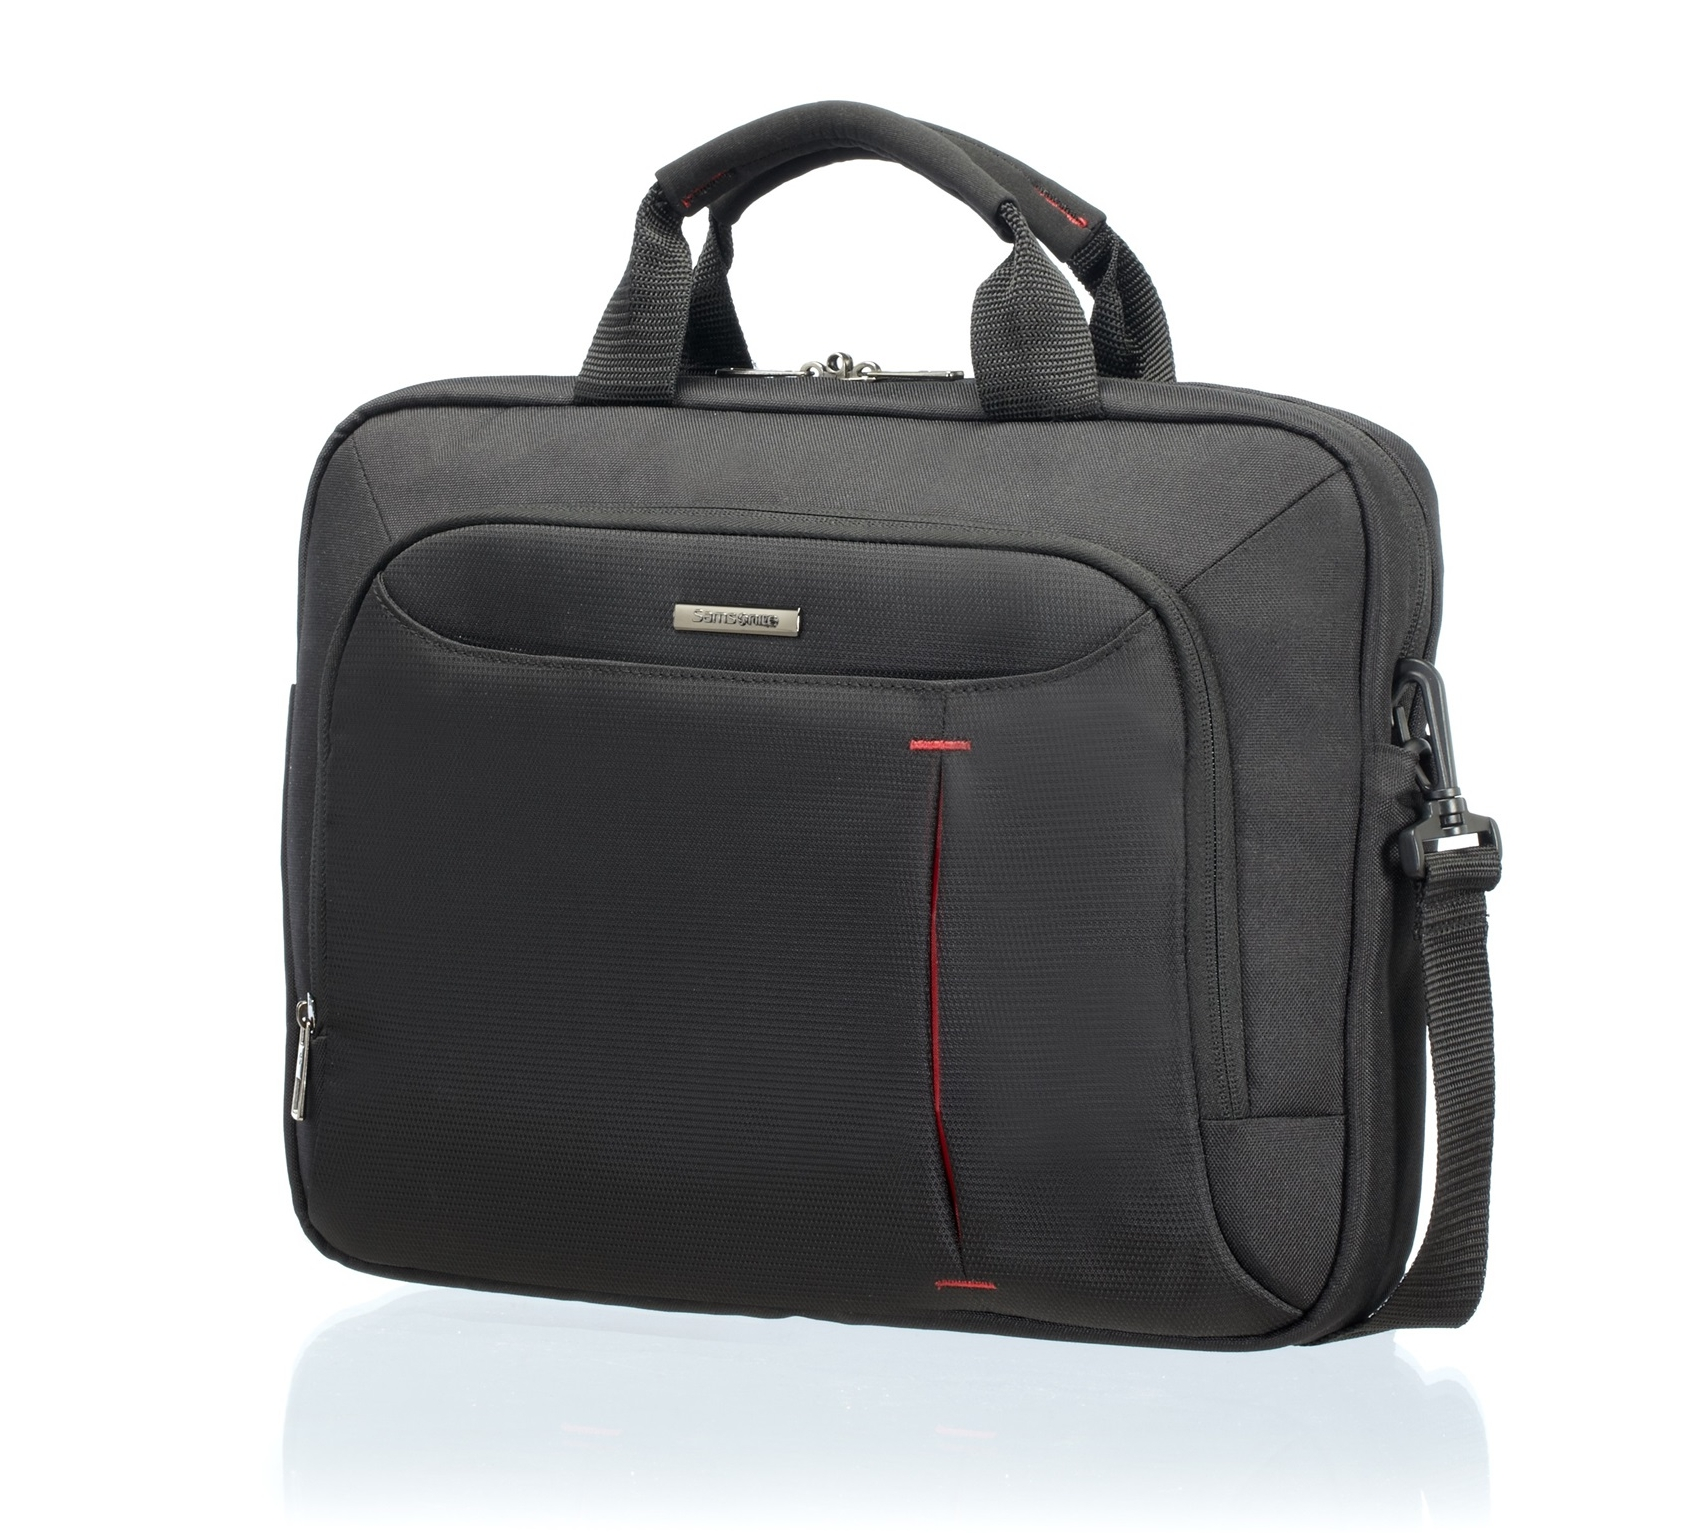 SAMSONITE - BORSE NOTEBOOK - 5414847411410